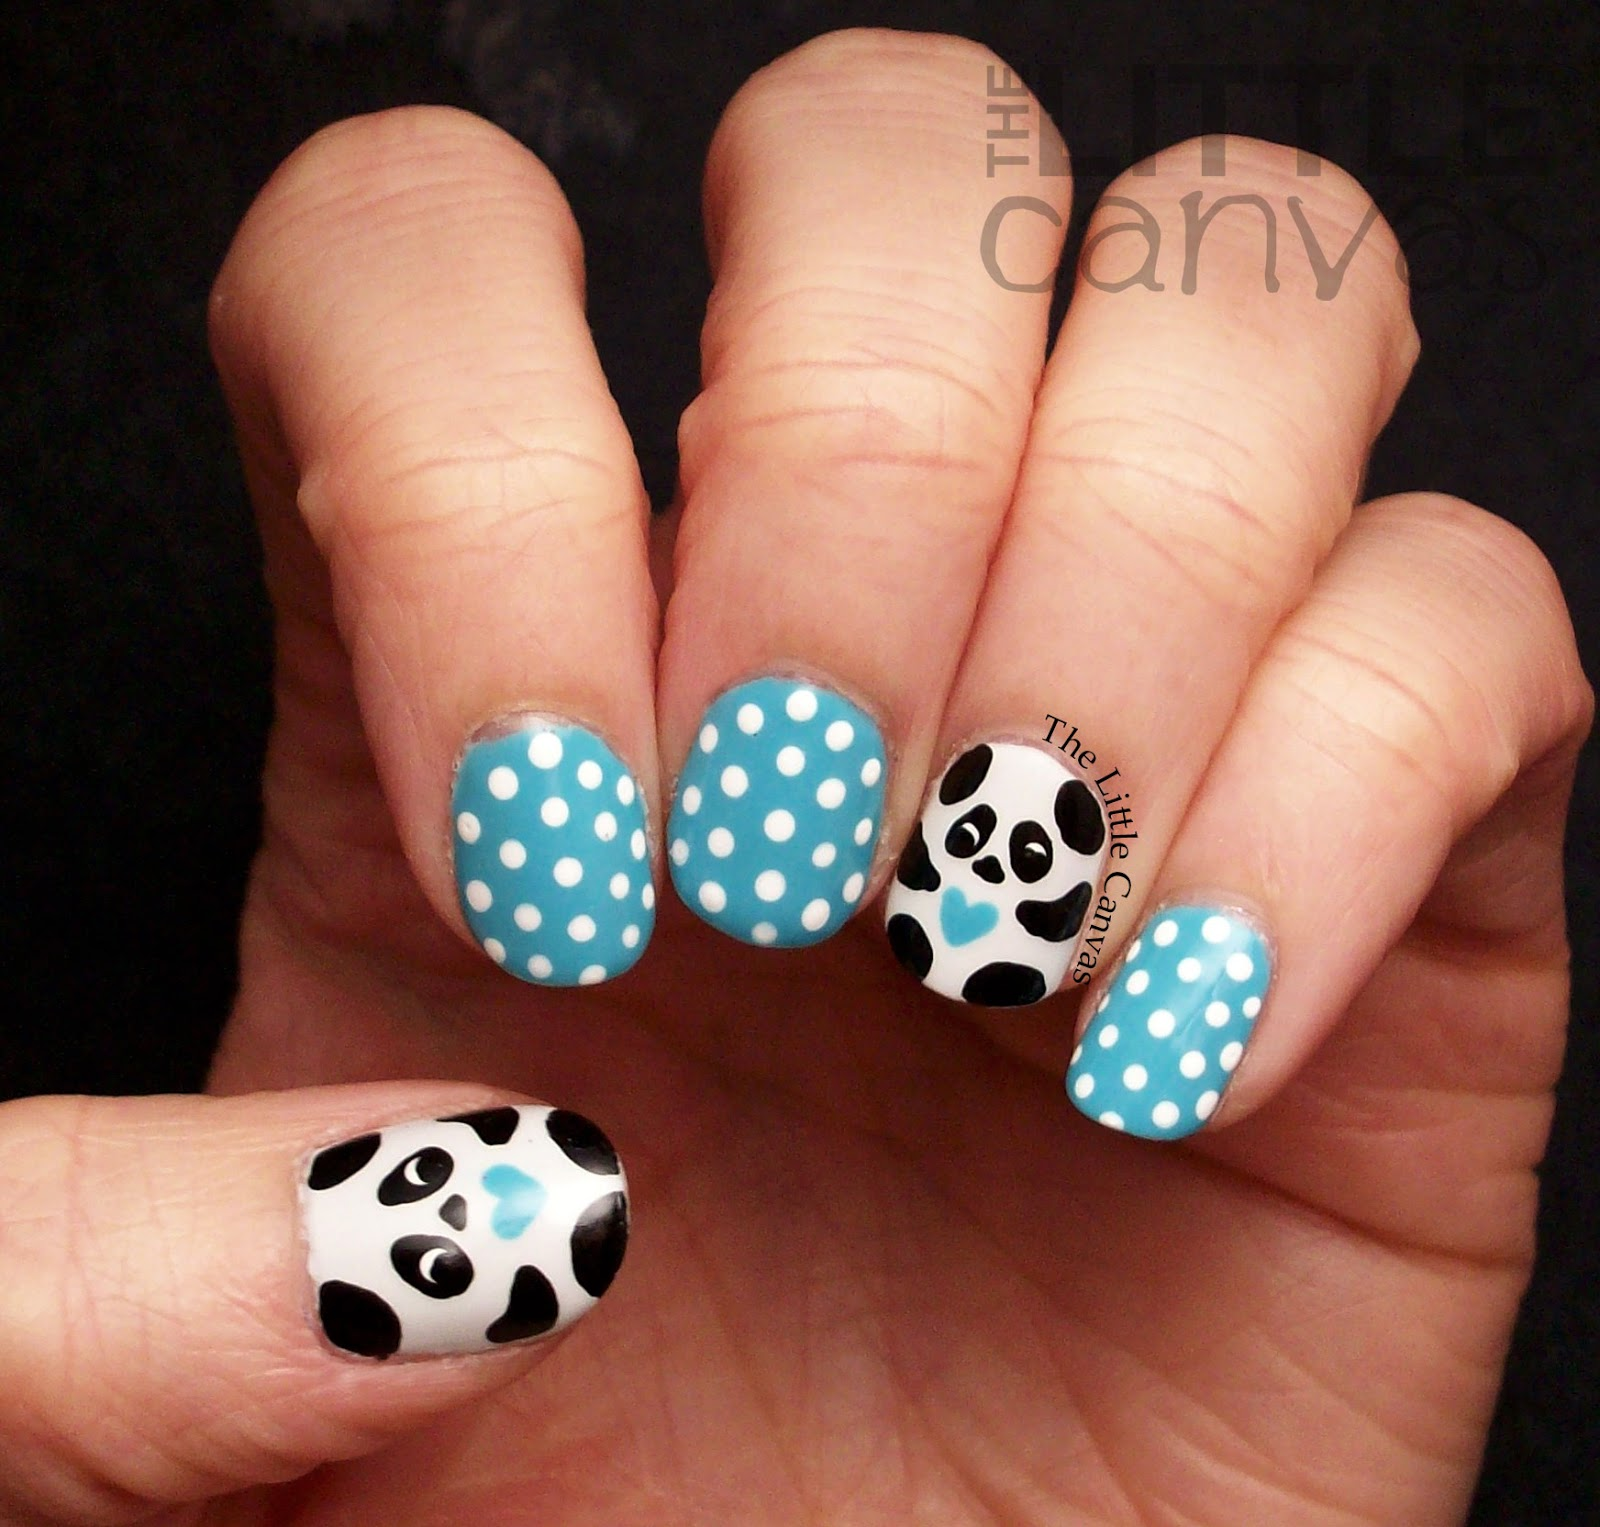 Panda nail art the little canvas lets take a look prinsesfo Images